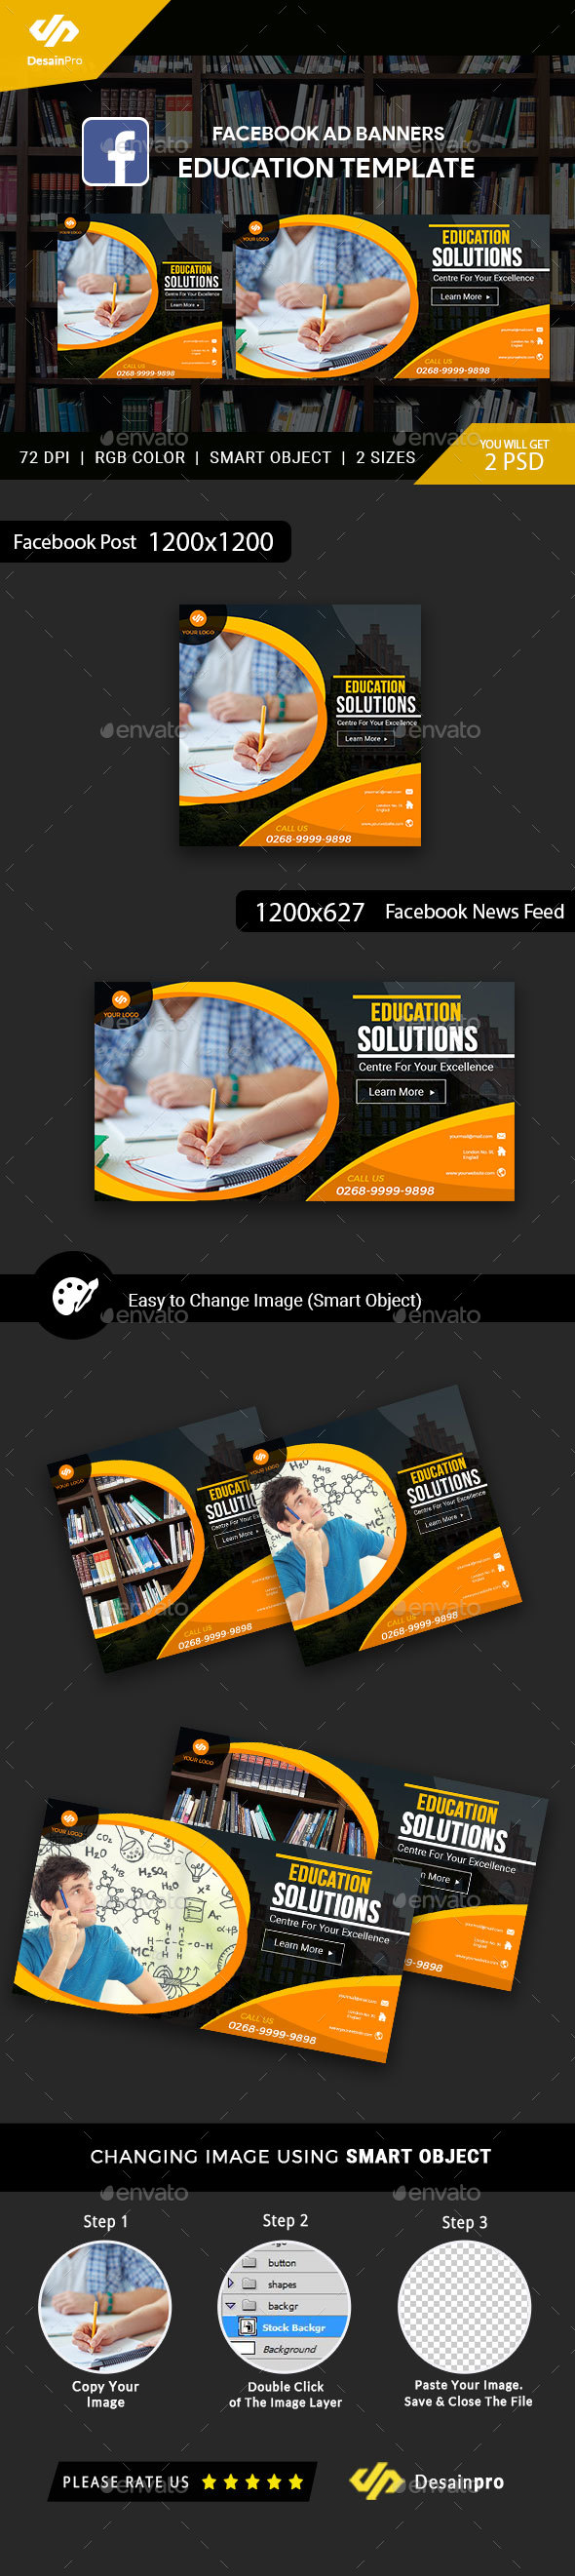 Education Facebook Ad Banners - AR - Facebook Timeline Covers Social Media